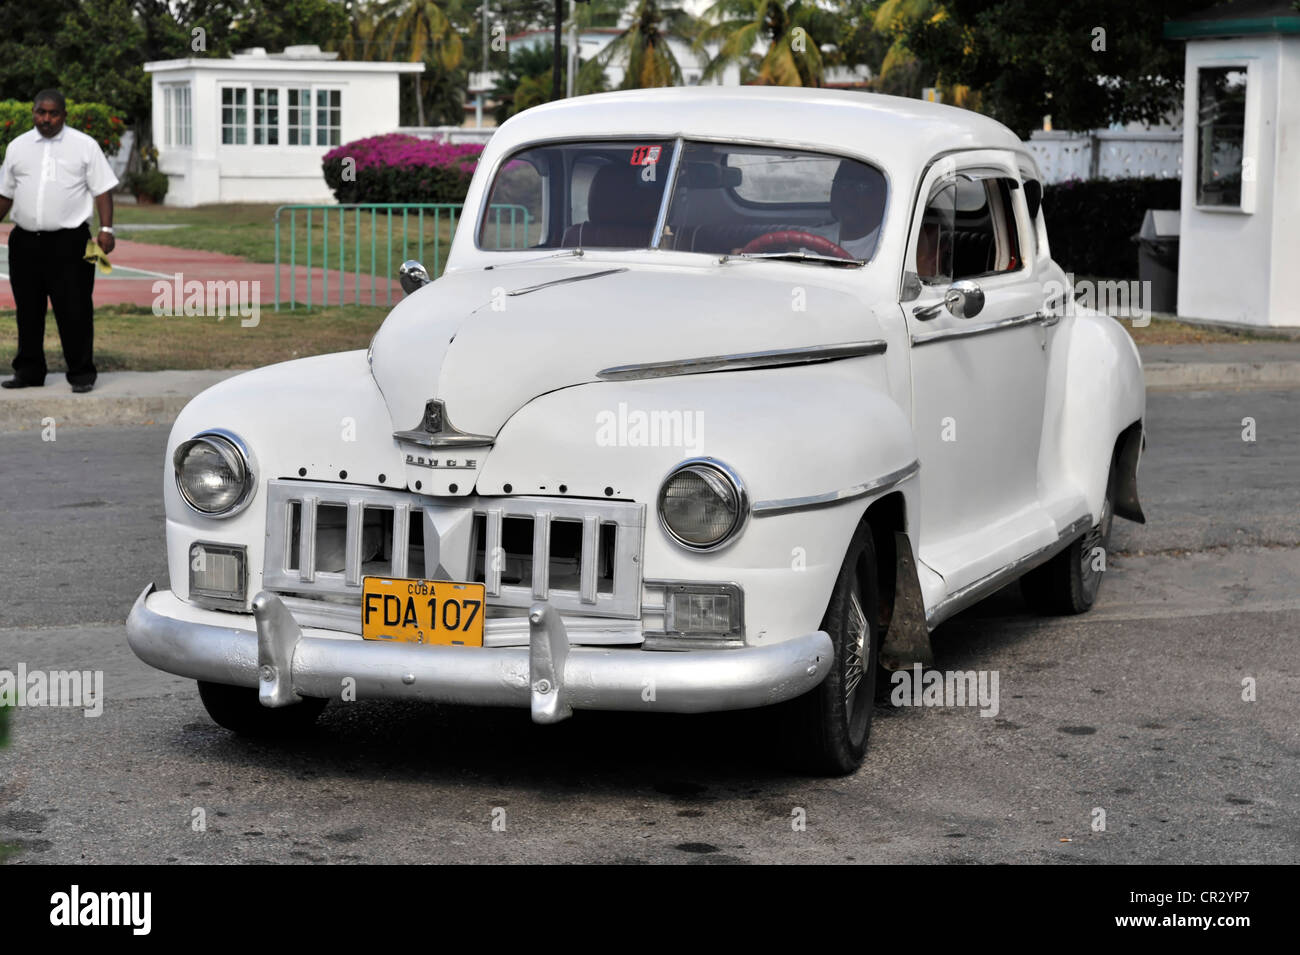 Dodge Vintage Car High Resolution Stock Photography And Images Alamy